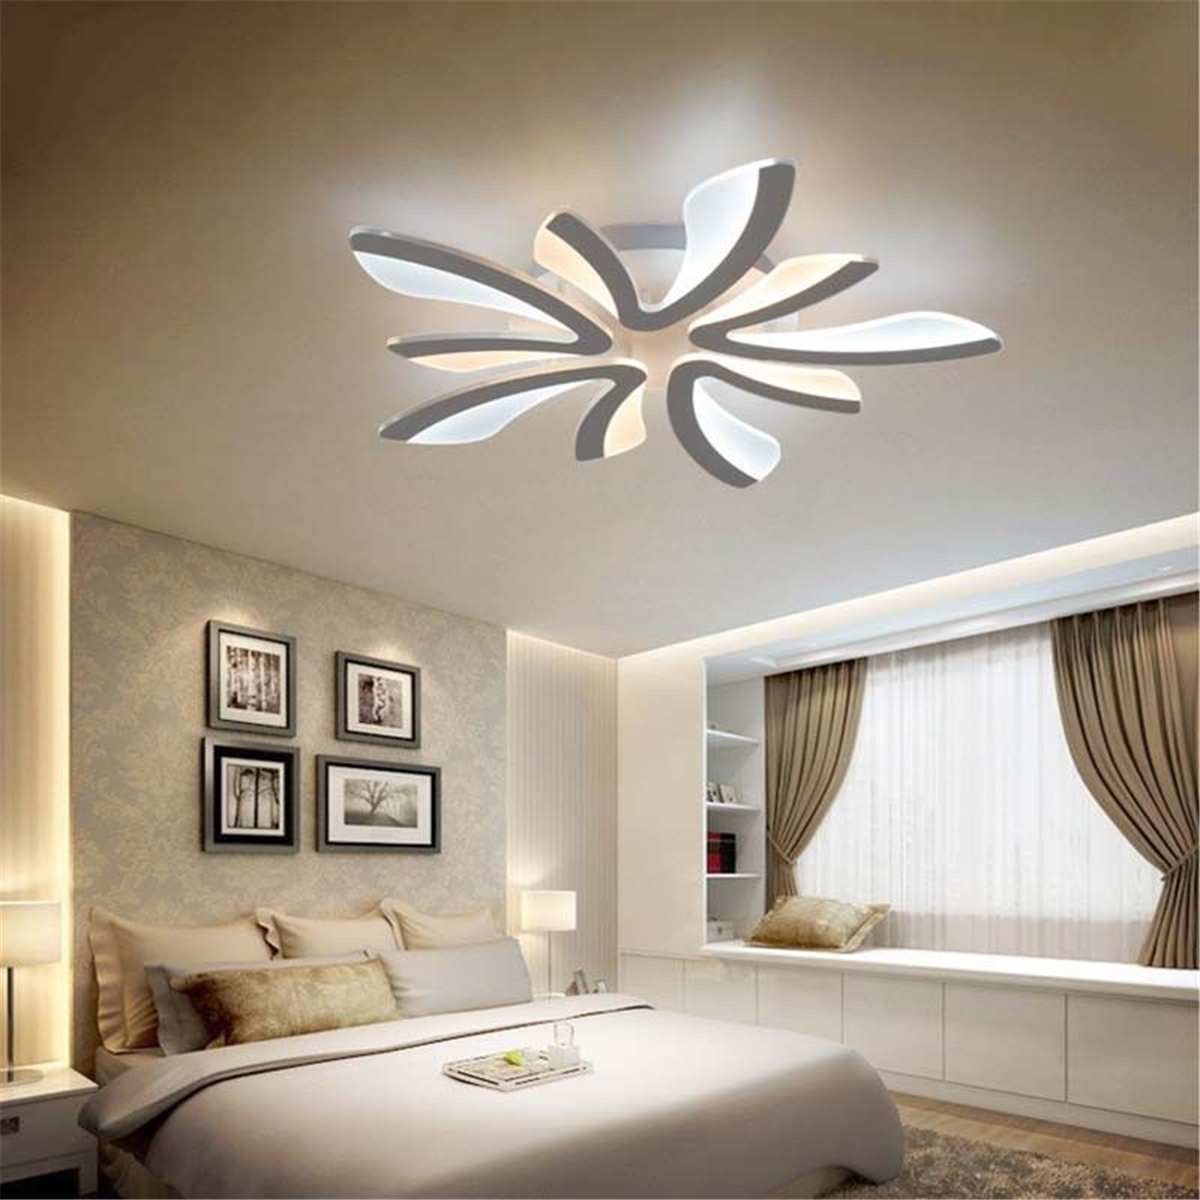 Delicate Modern LED Acrylic Ceiling Lamp Pendant Light Chandeliers Home Living Room Bedroom Dining Bedroom Decor